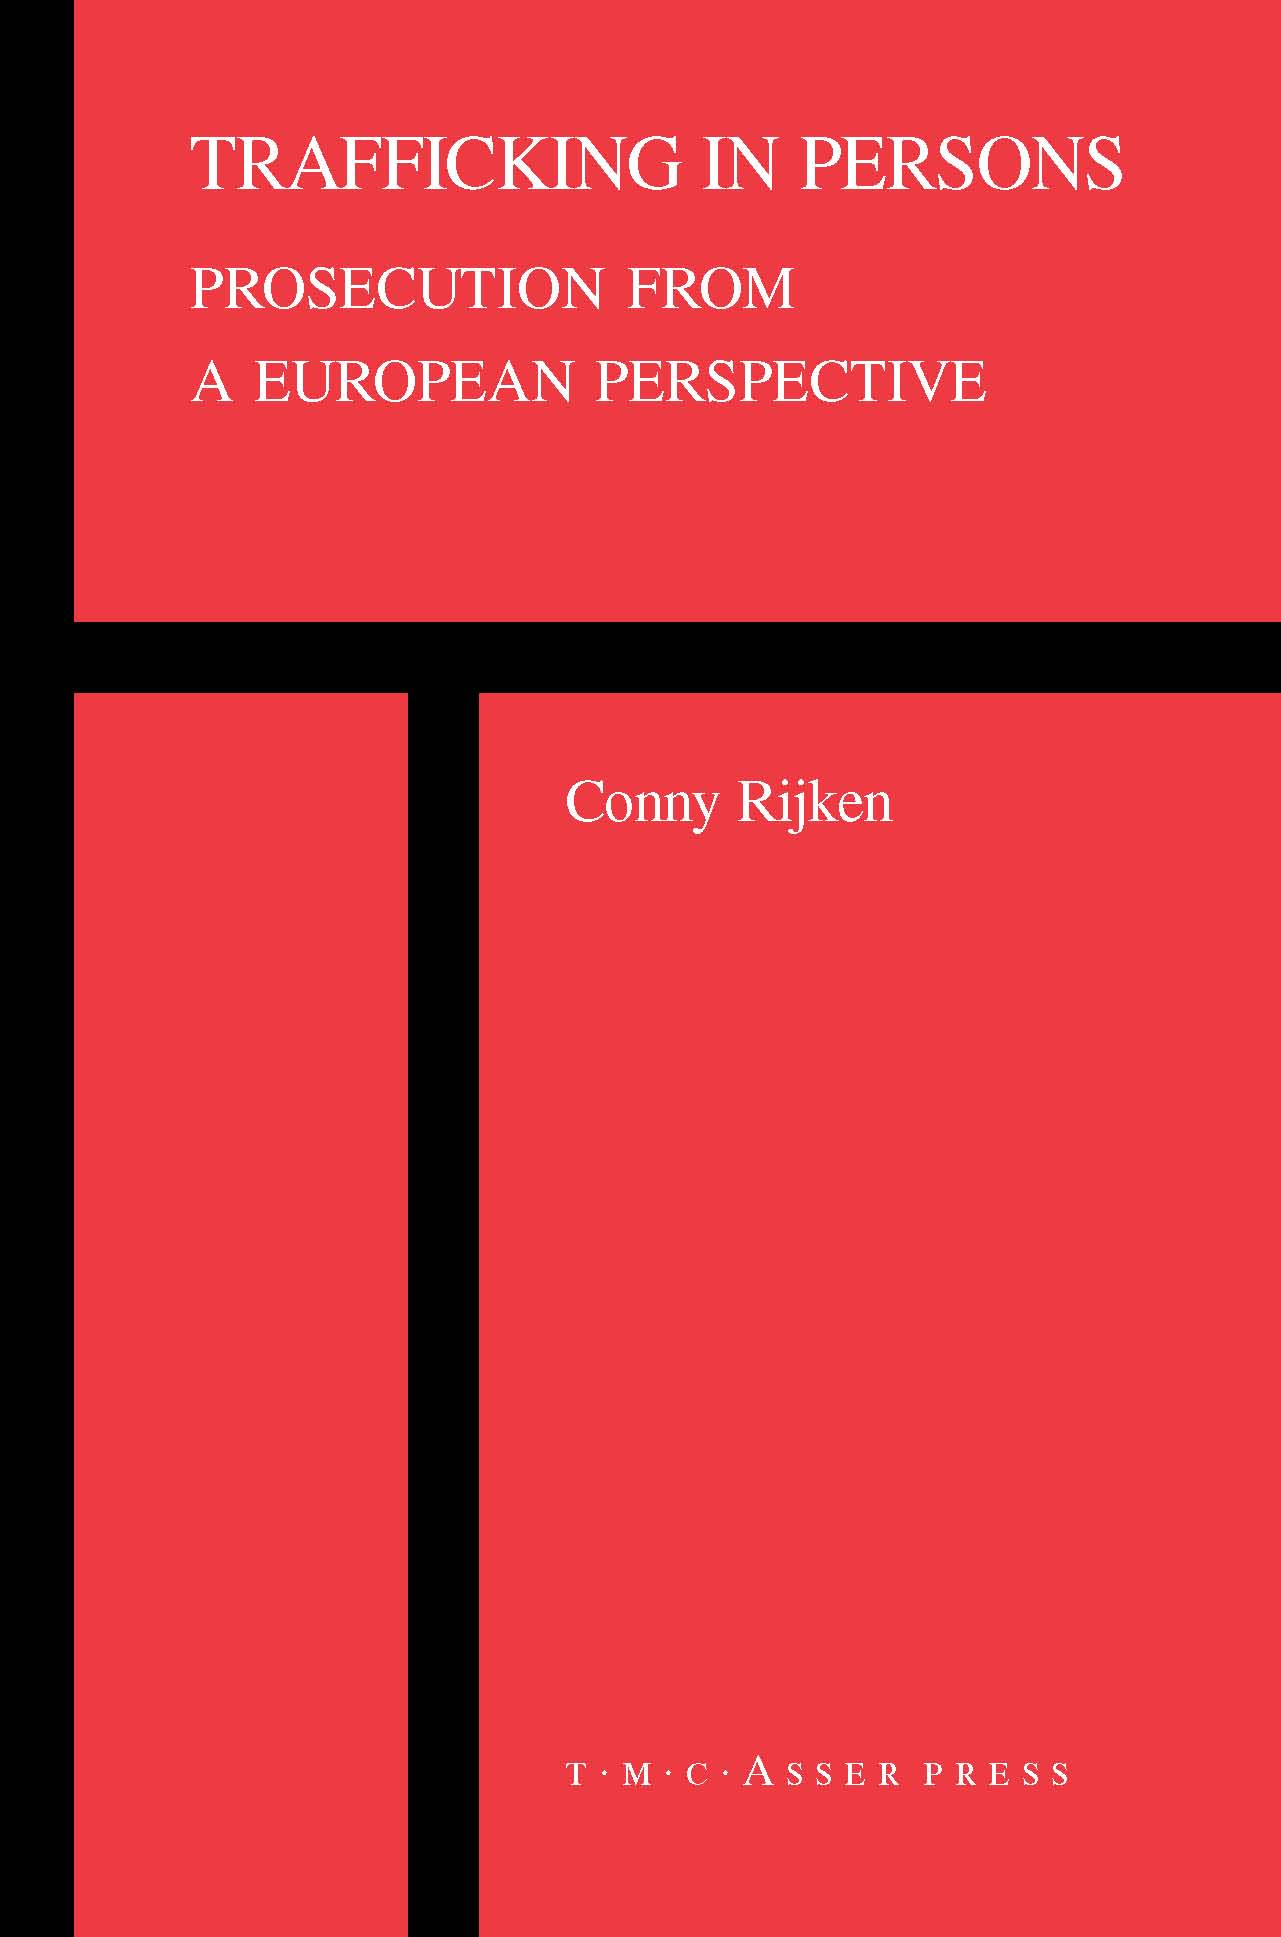 Trafficking in Persons - Prosecution from a European Perspective